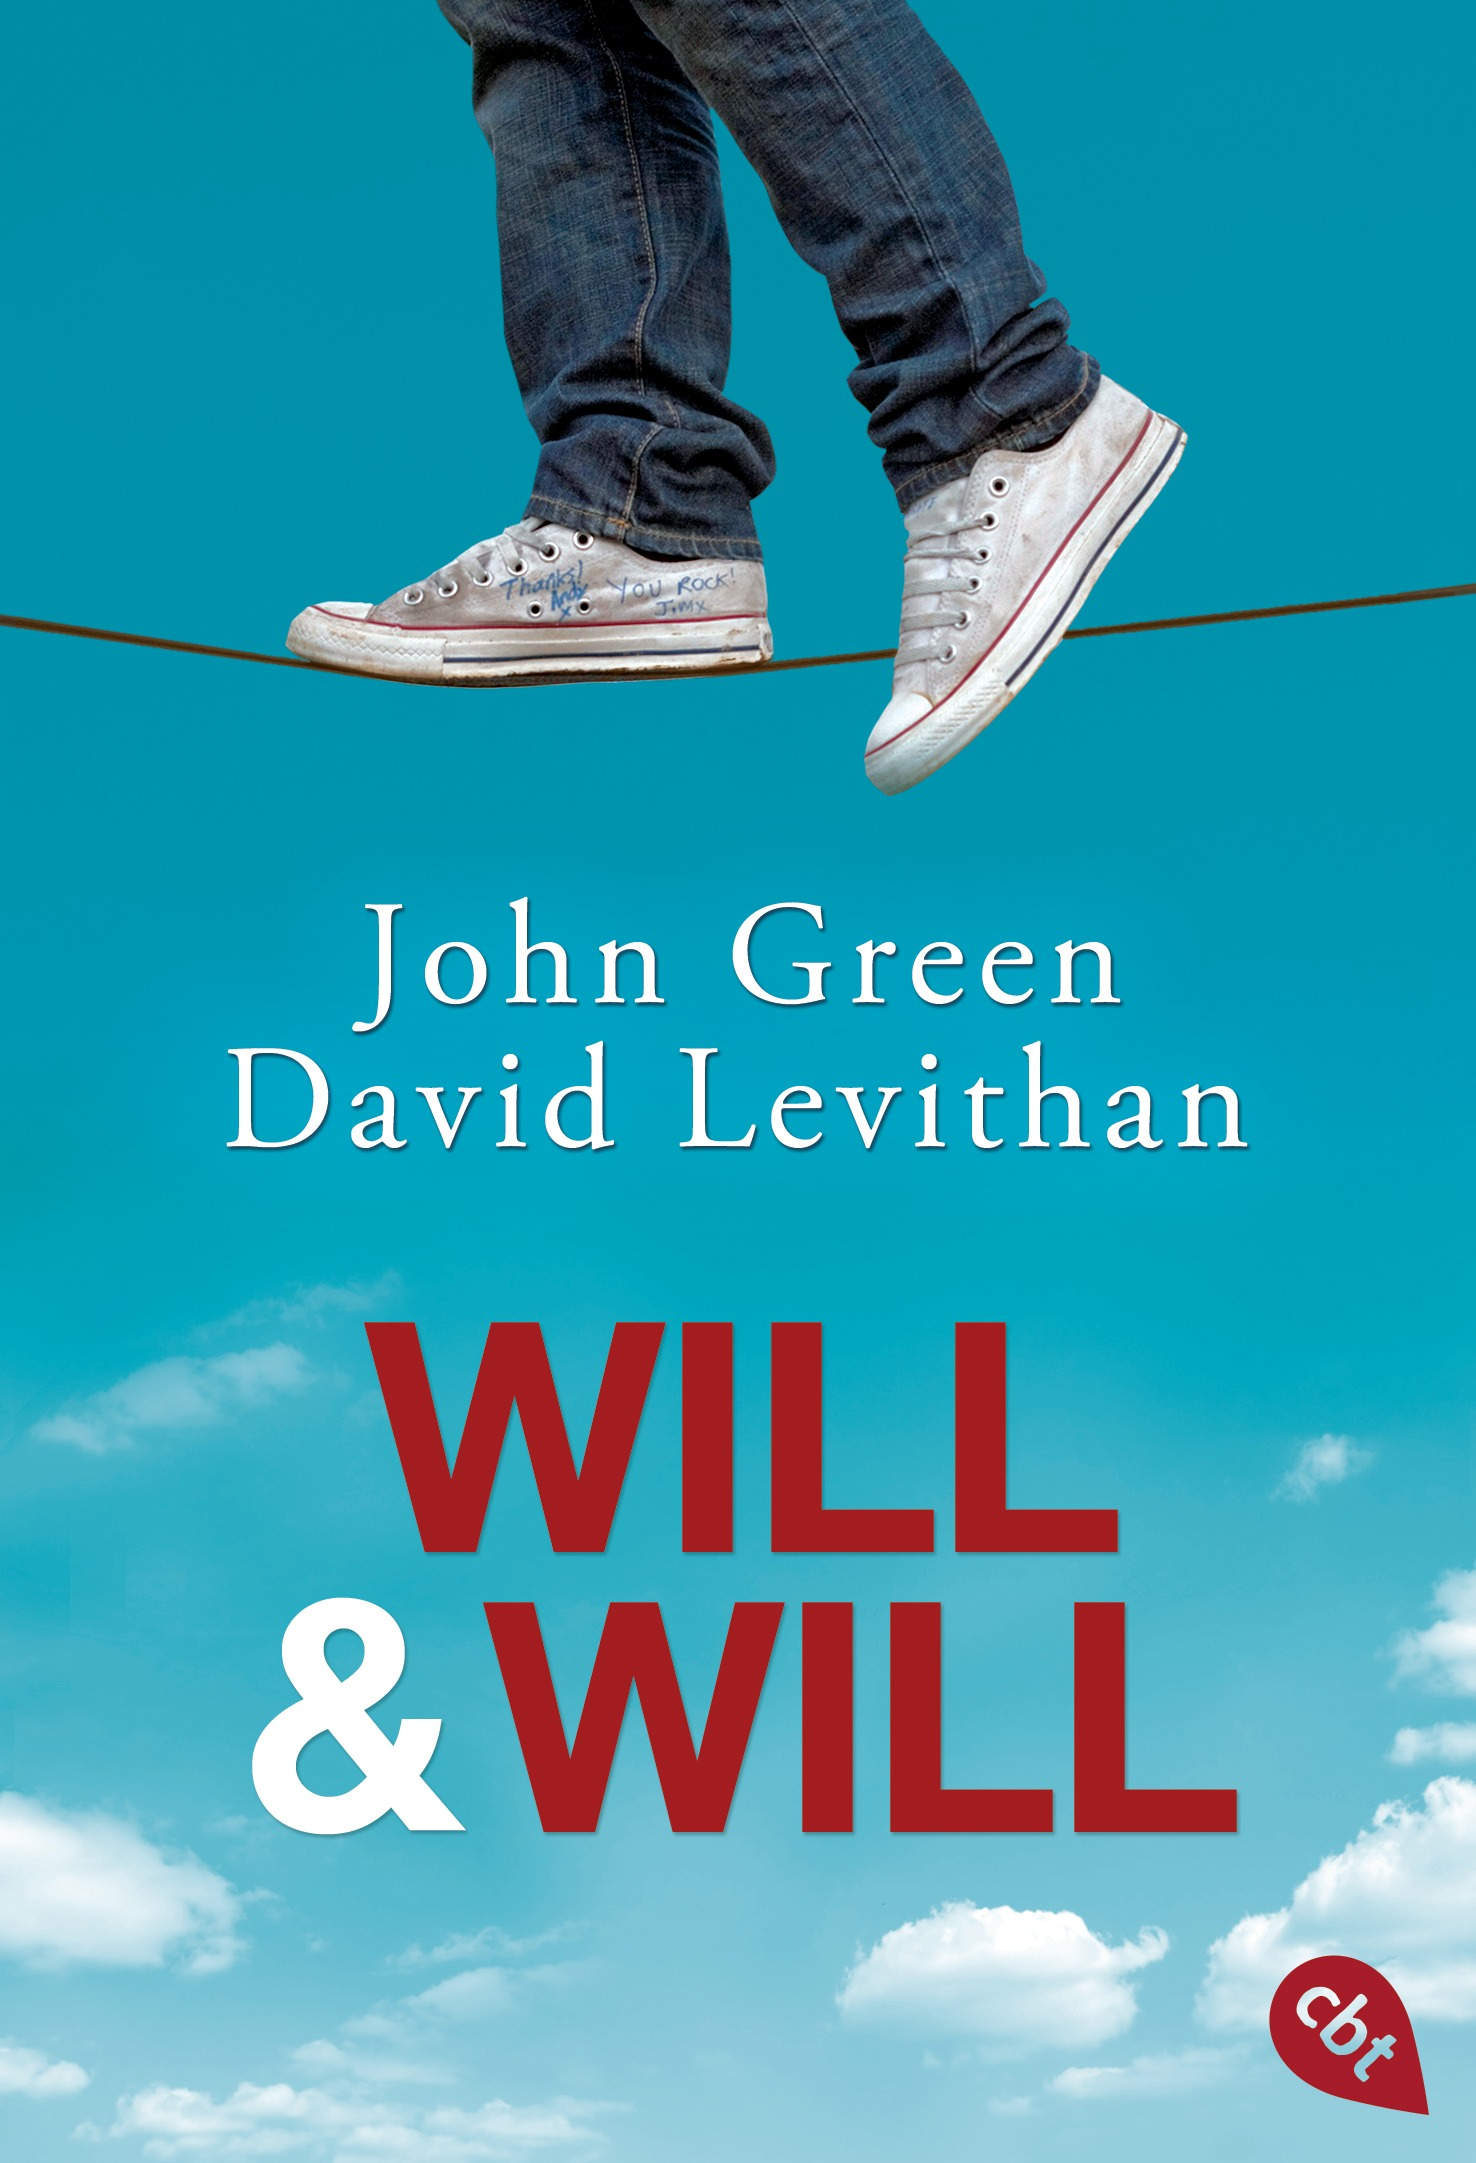 http://www.randomhouse.de/content/edition/covervoila_hires/Green_JWill_Will_149417.jpg